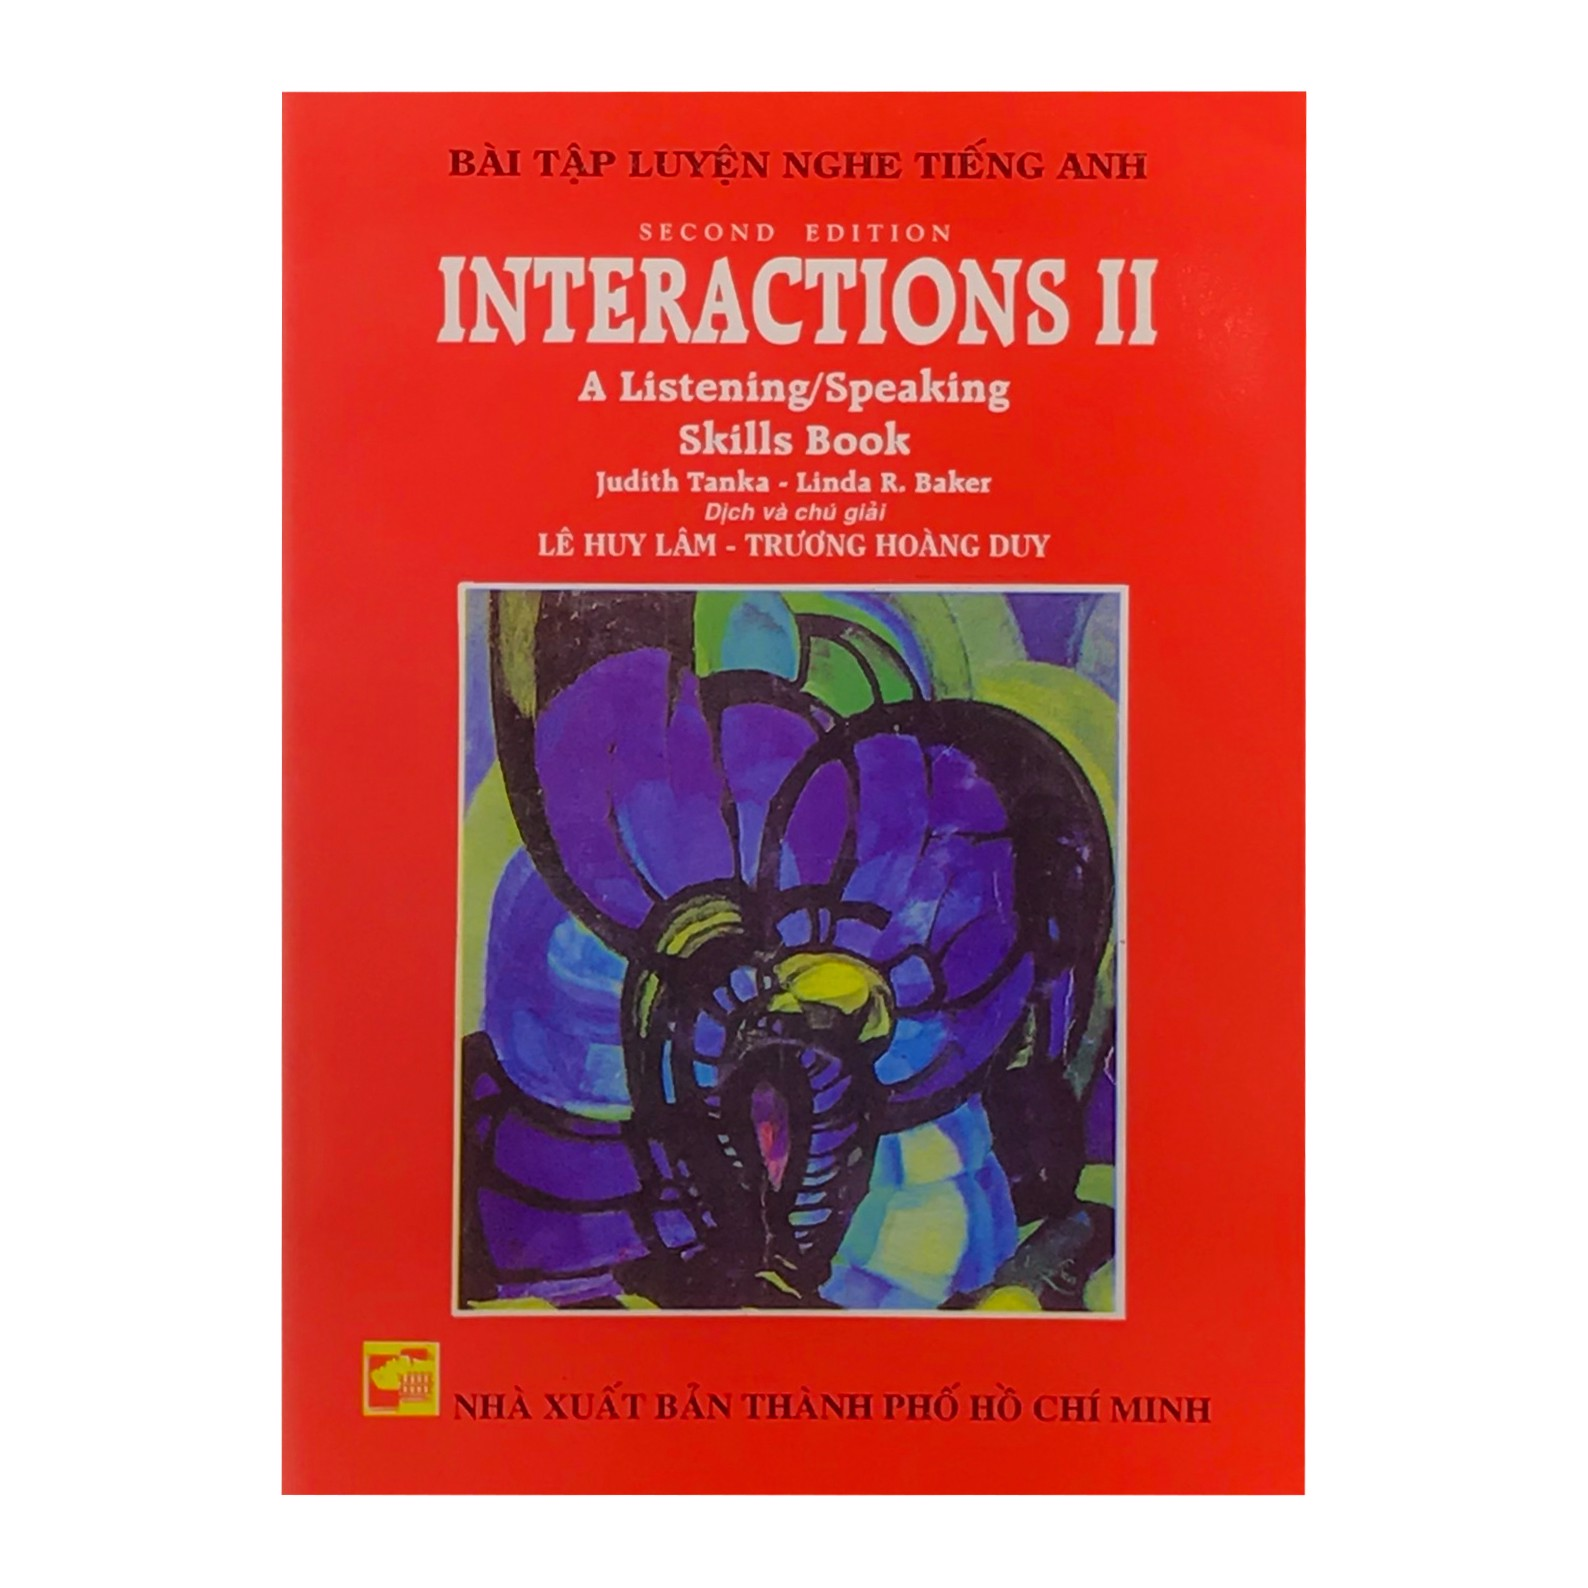 Interactions II - A Listening/Speaking Skills Book